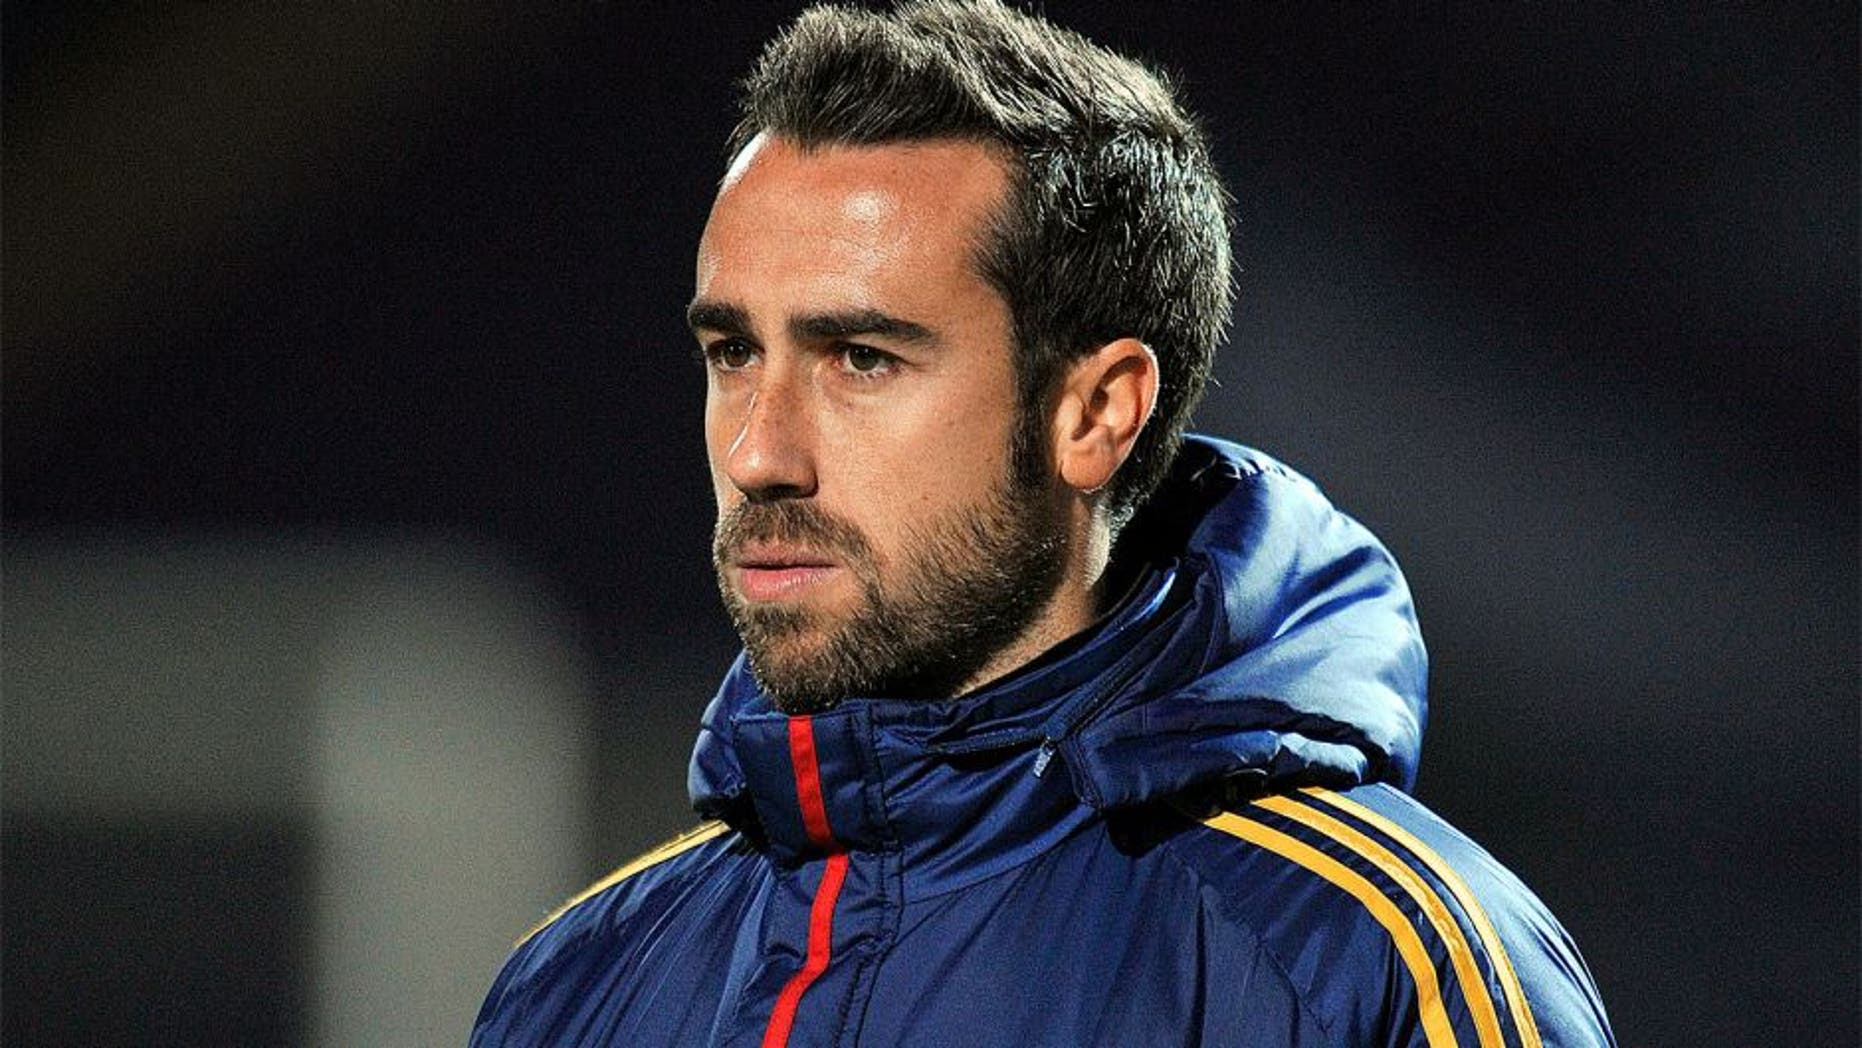 CHESTERFIELD, ENGLAND - DECEMBER 8: Jorge Vilda Head Coach of Spain during the UEFA European Women's Under - 17 Championship Final match between Germany and Spain at the Proact Stadium on December 8, 2013 in Chesterfield, England. (Photo by Clint Hughes/Getty Images)